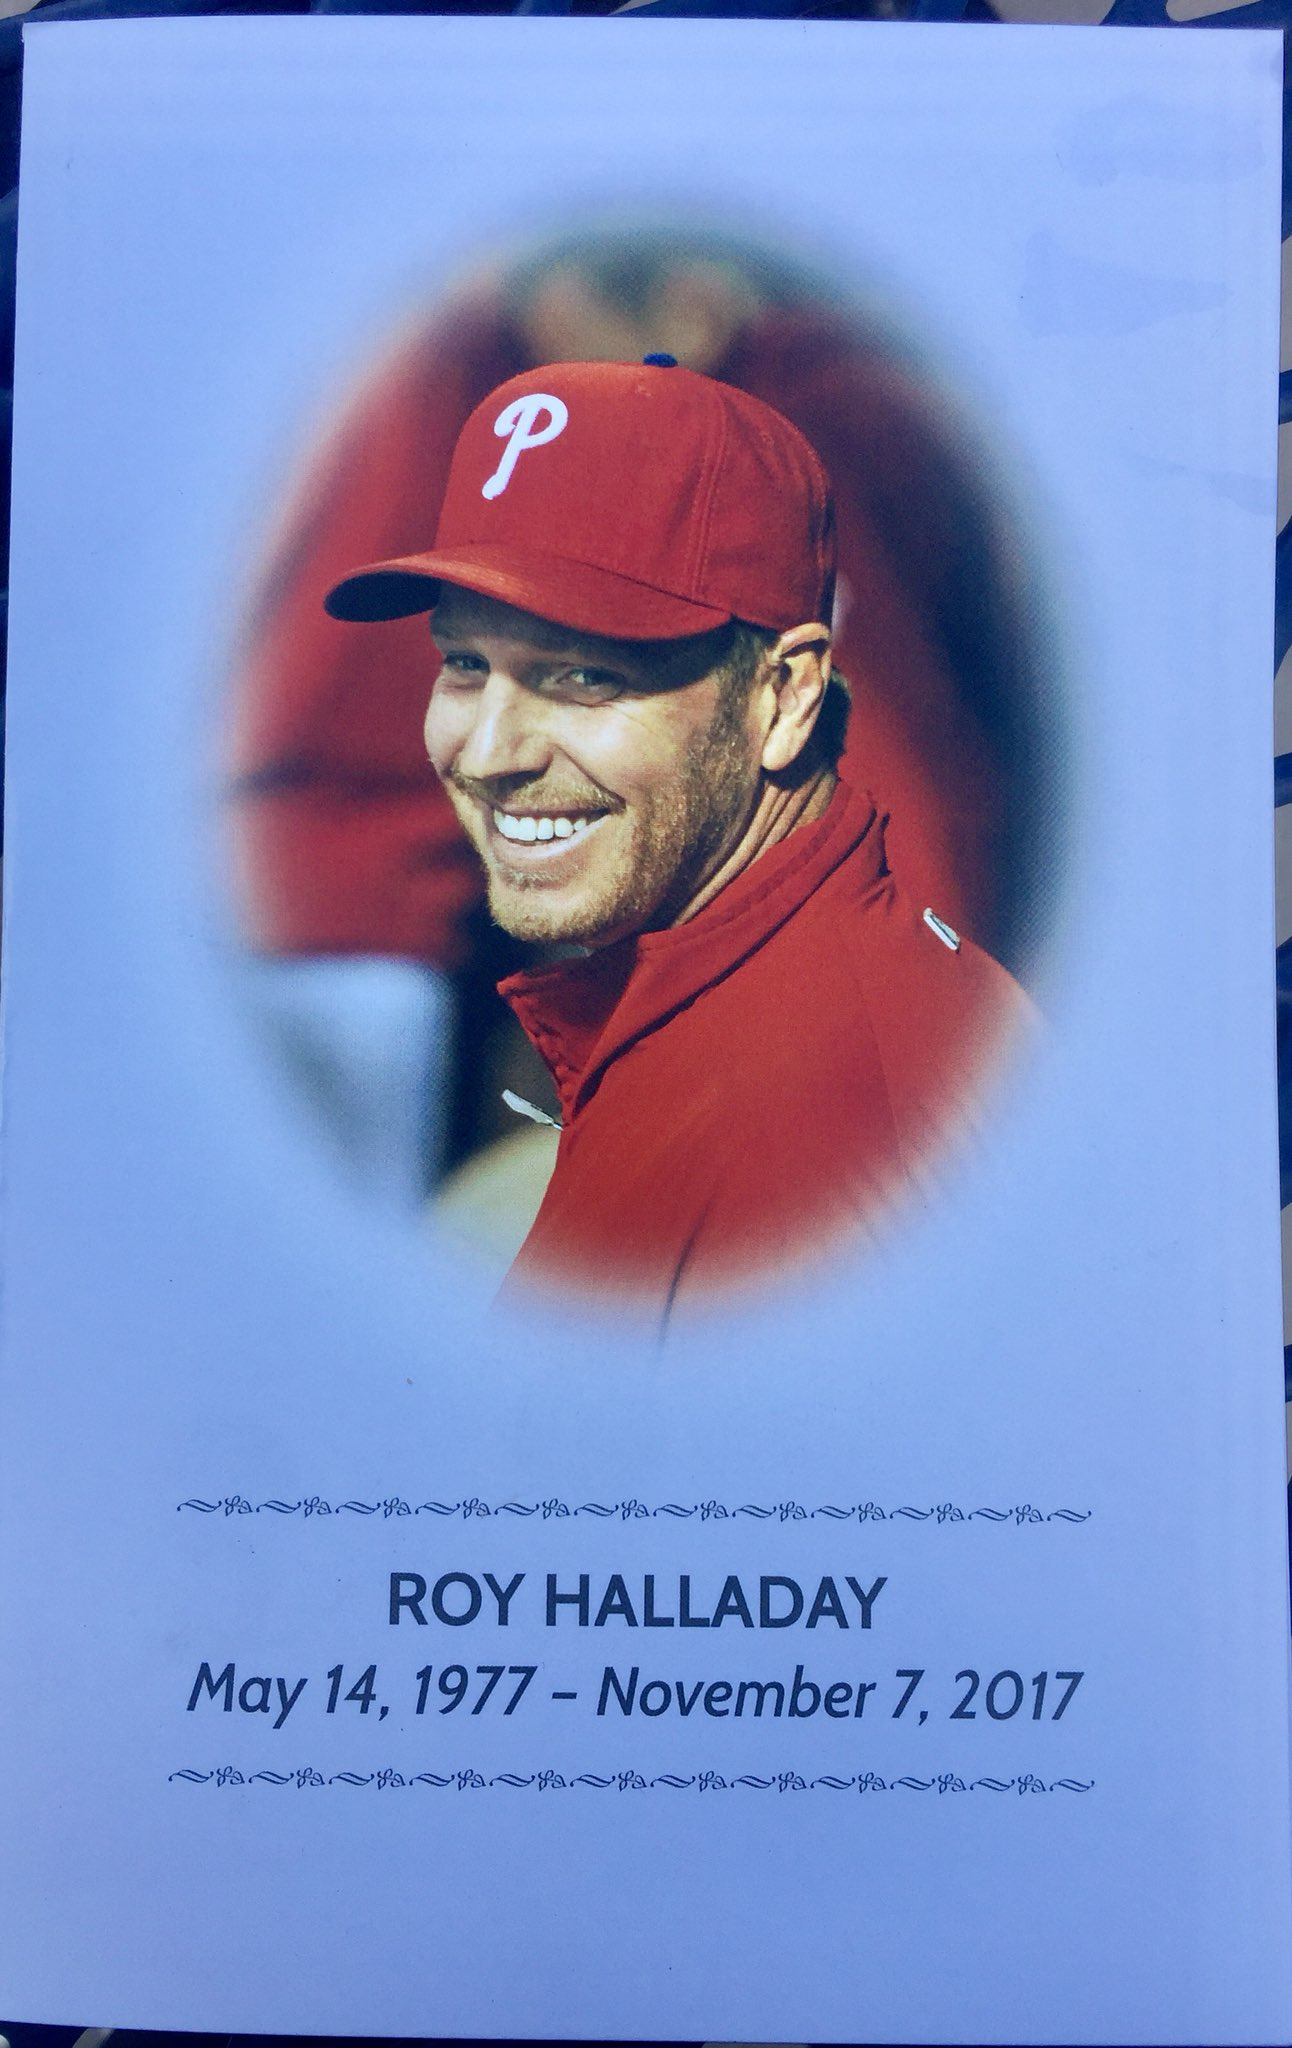 Roy Halladay's memorial service program. https://t.co/UKR9hRZKFG